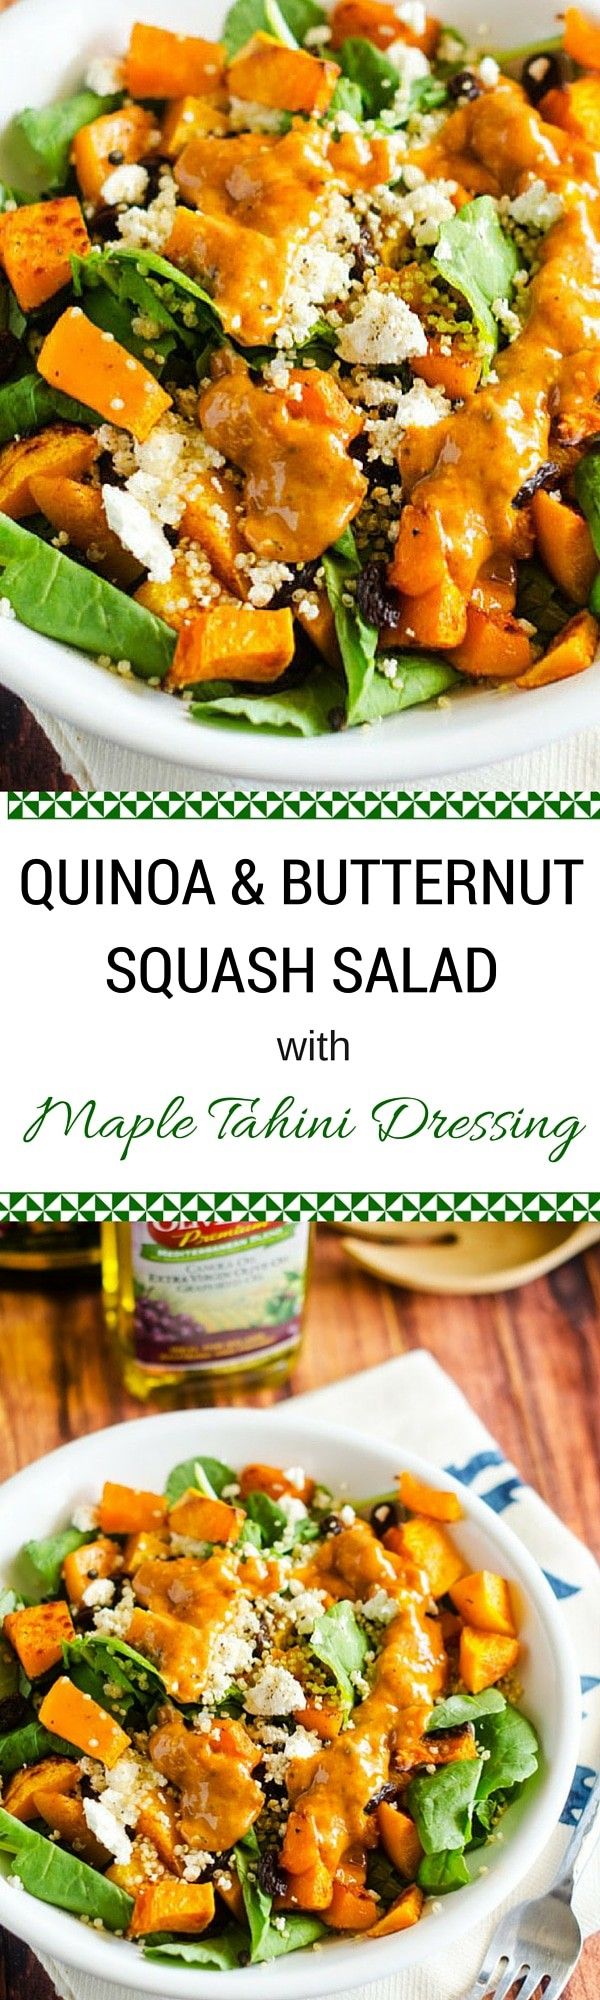 Quinoa & Butternut Squash Salad with Maple Tahini Dressing - This quinoa salad is the perfect fall salad with butternut squash, cranberries and a sweet heat maple dressing. So delicious!